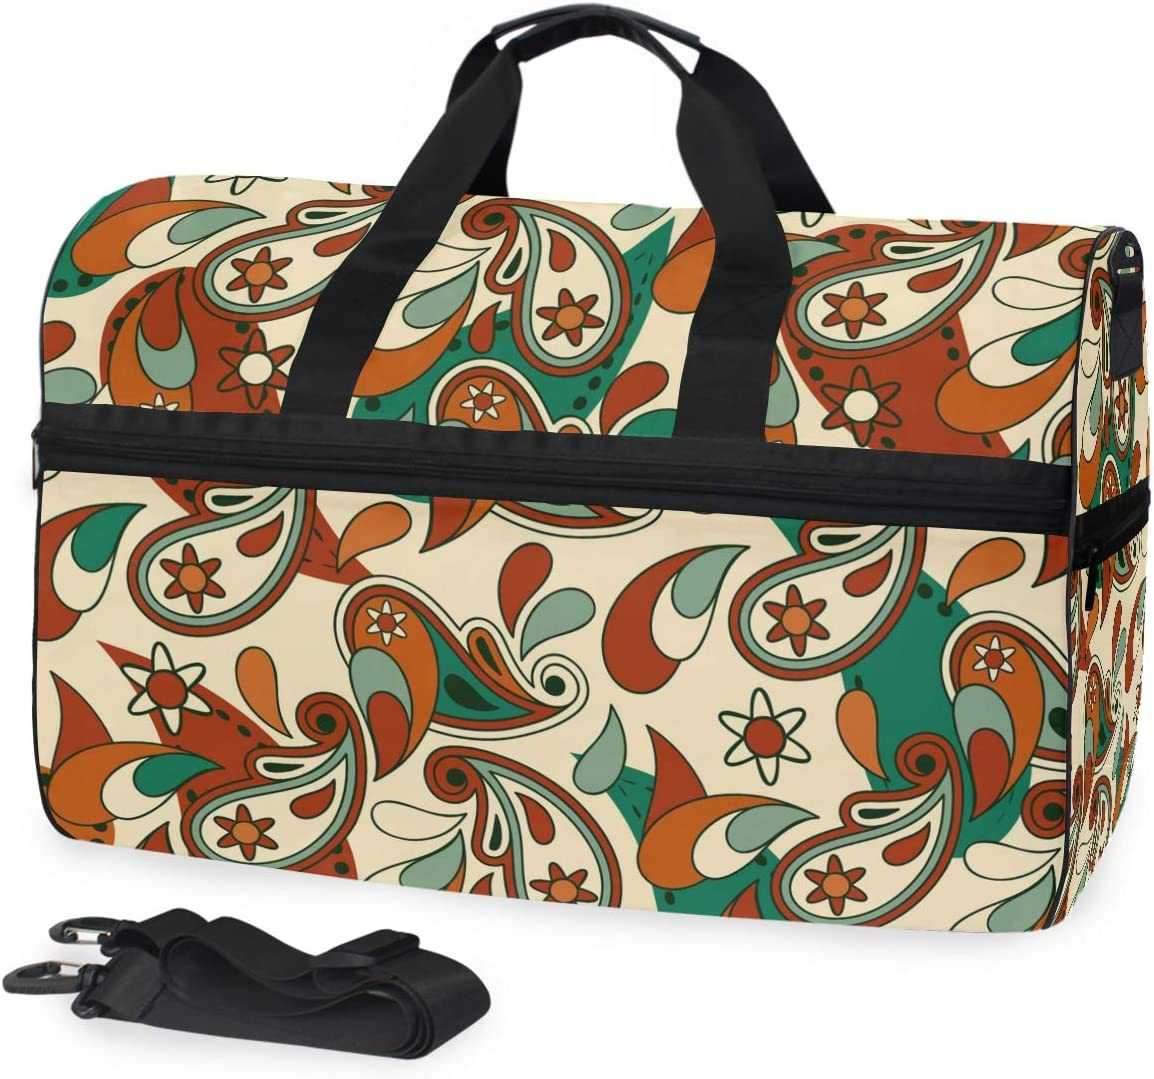 Travel Duffels Vintage Abstract Duffle Bag Luggage Sports Gym for Women /& Men